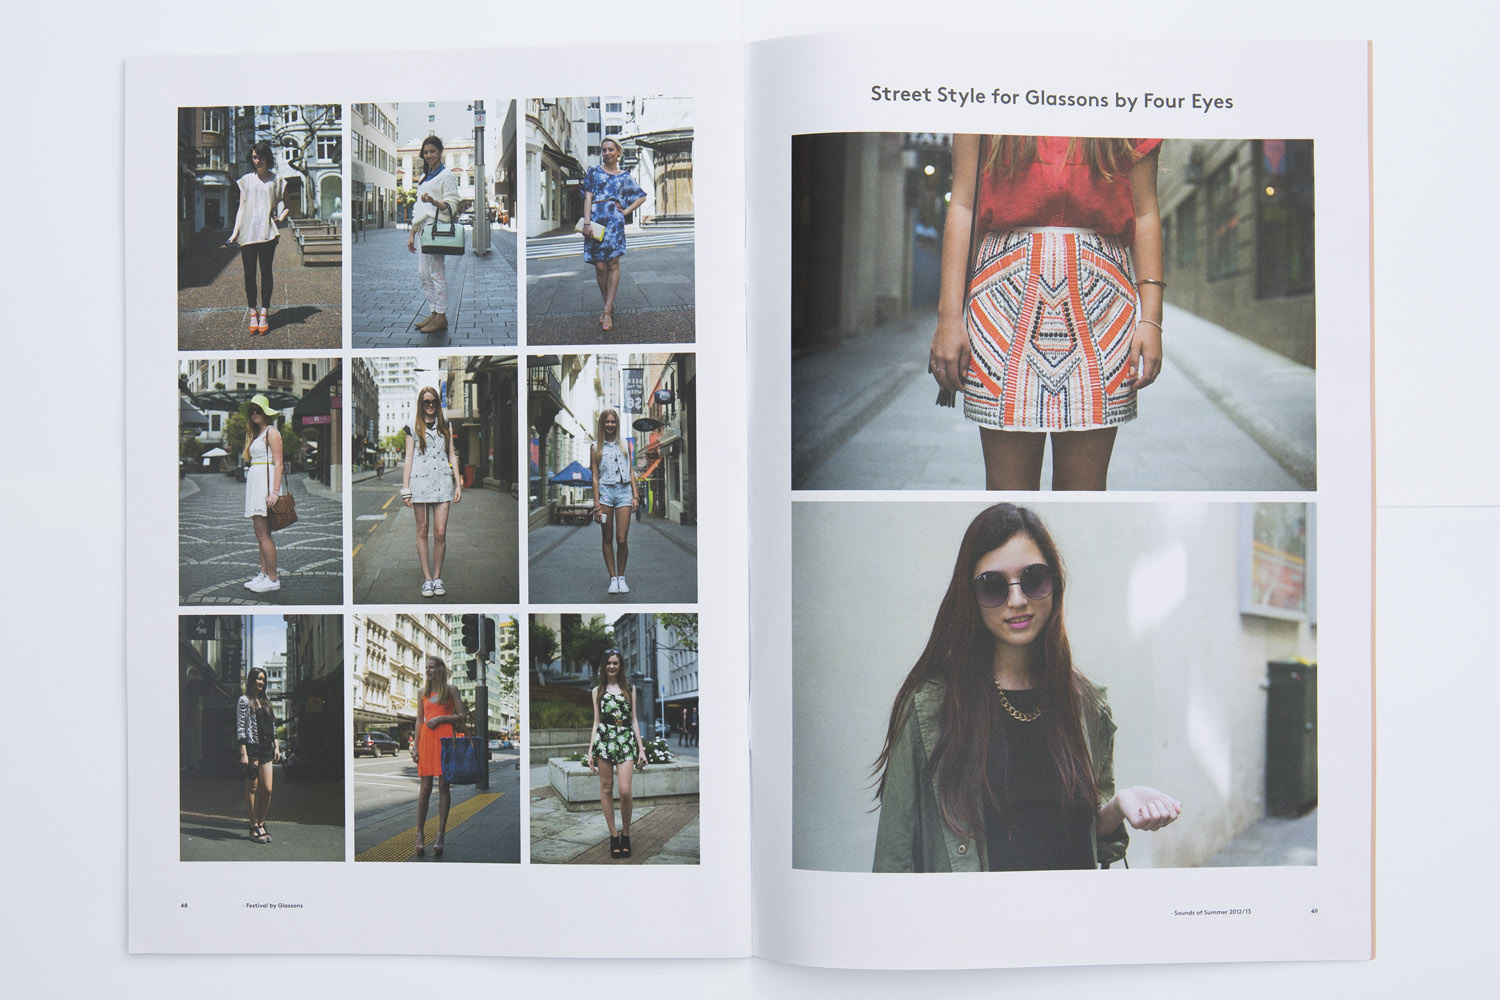 FOUREYES photographed streetstyle for Glassons